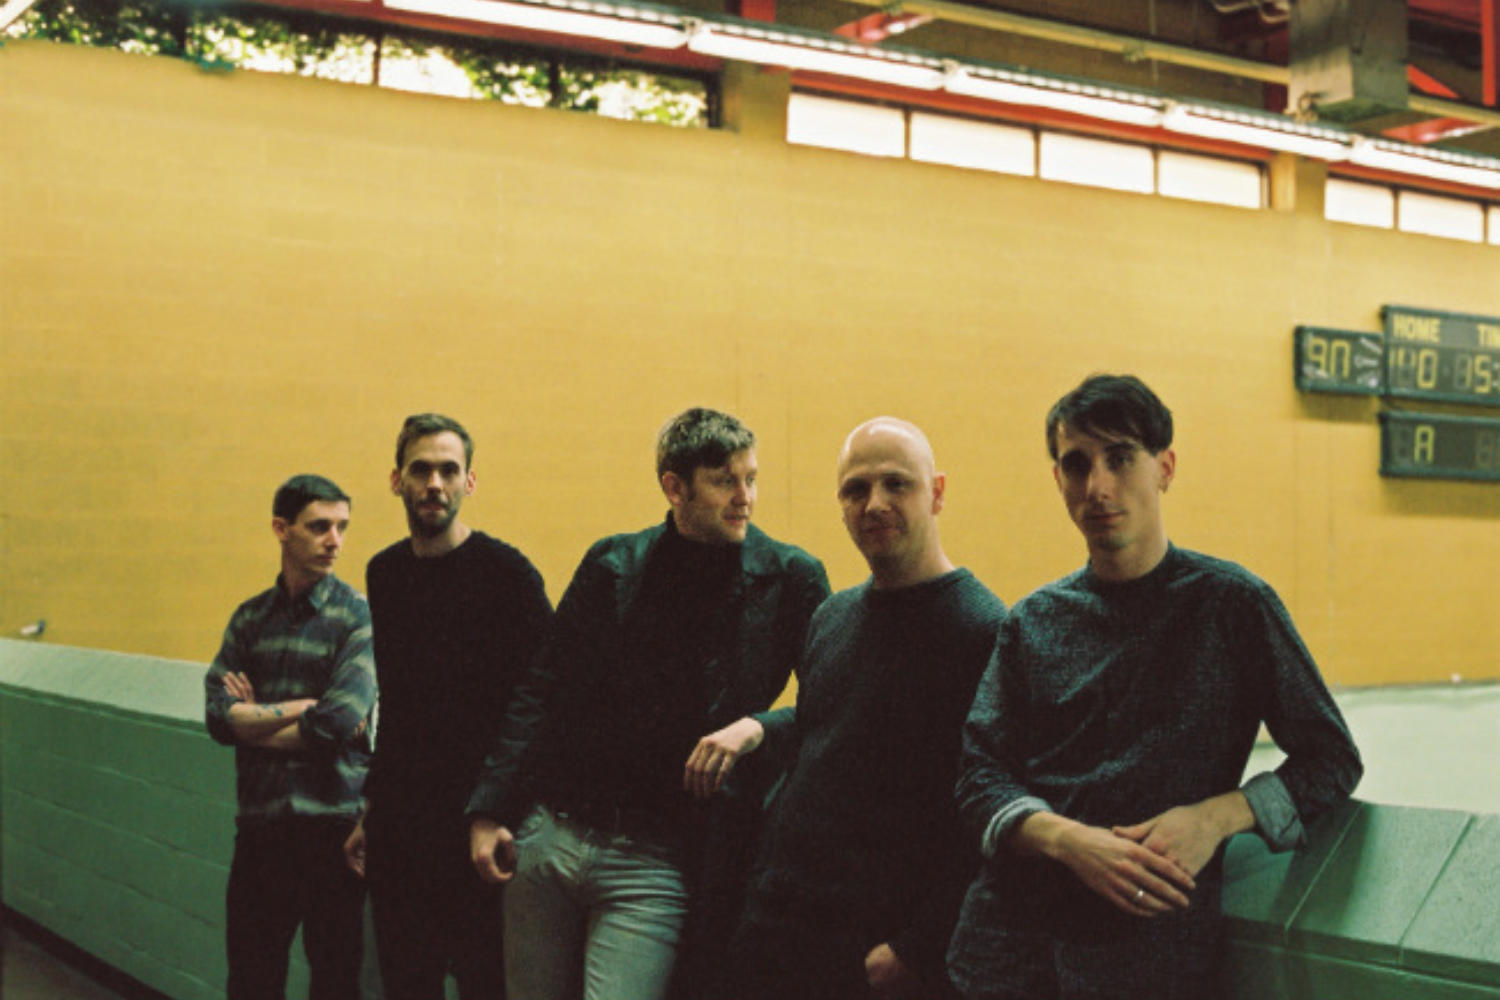 Outfit share 'Framed', announce UK tour